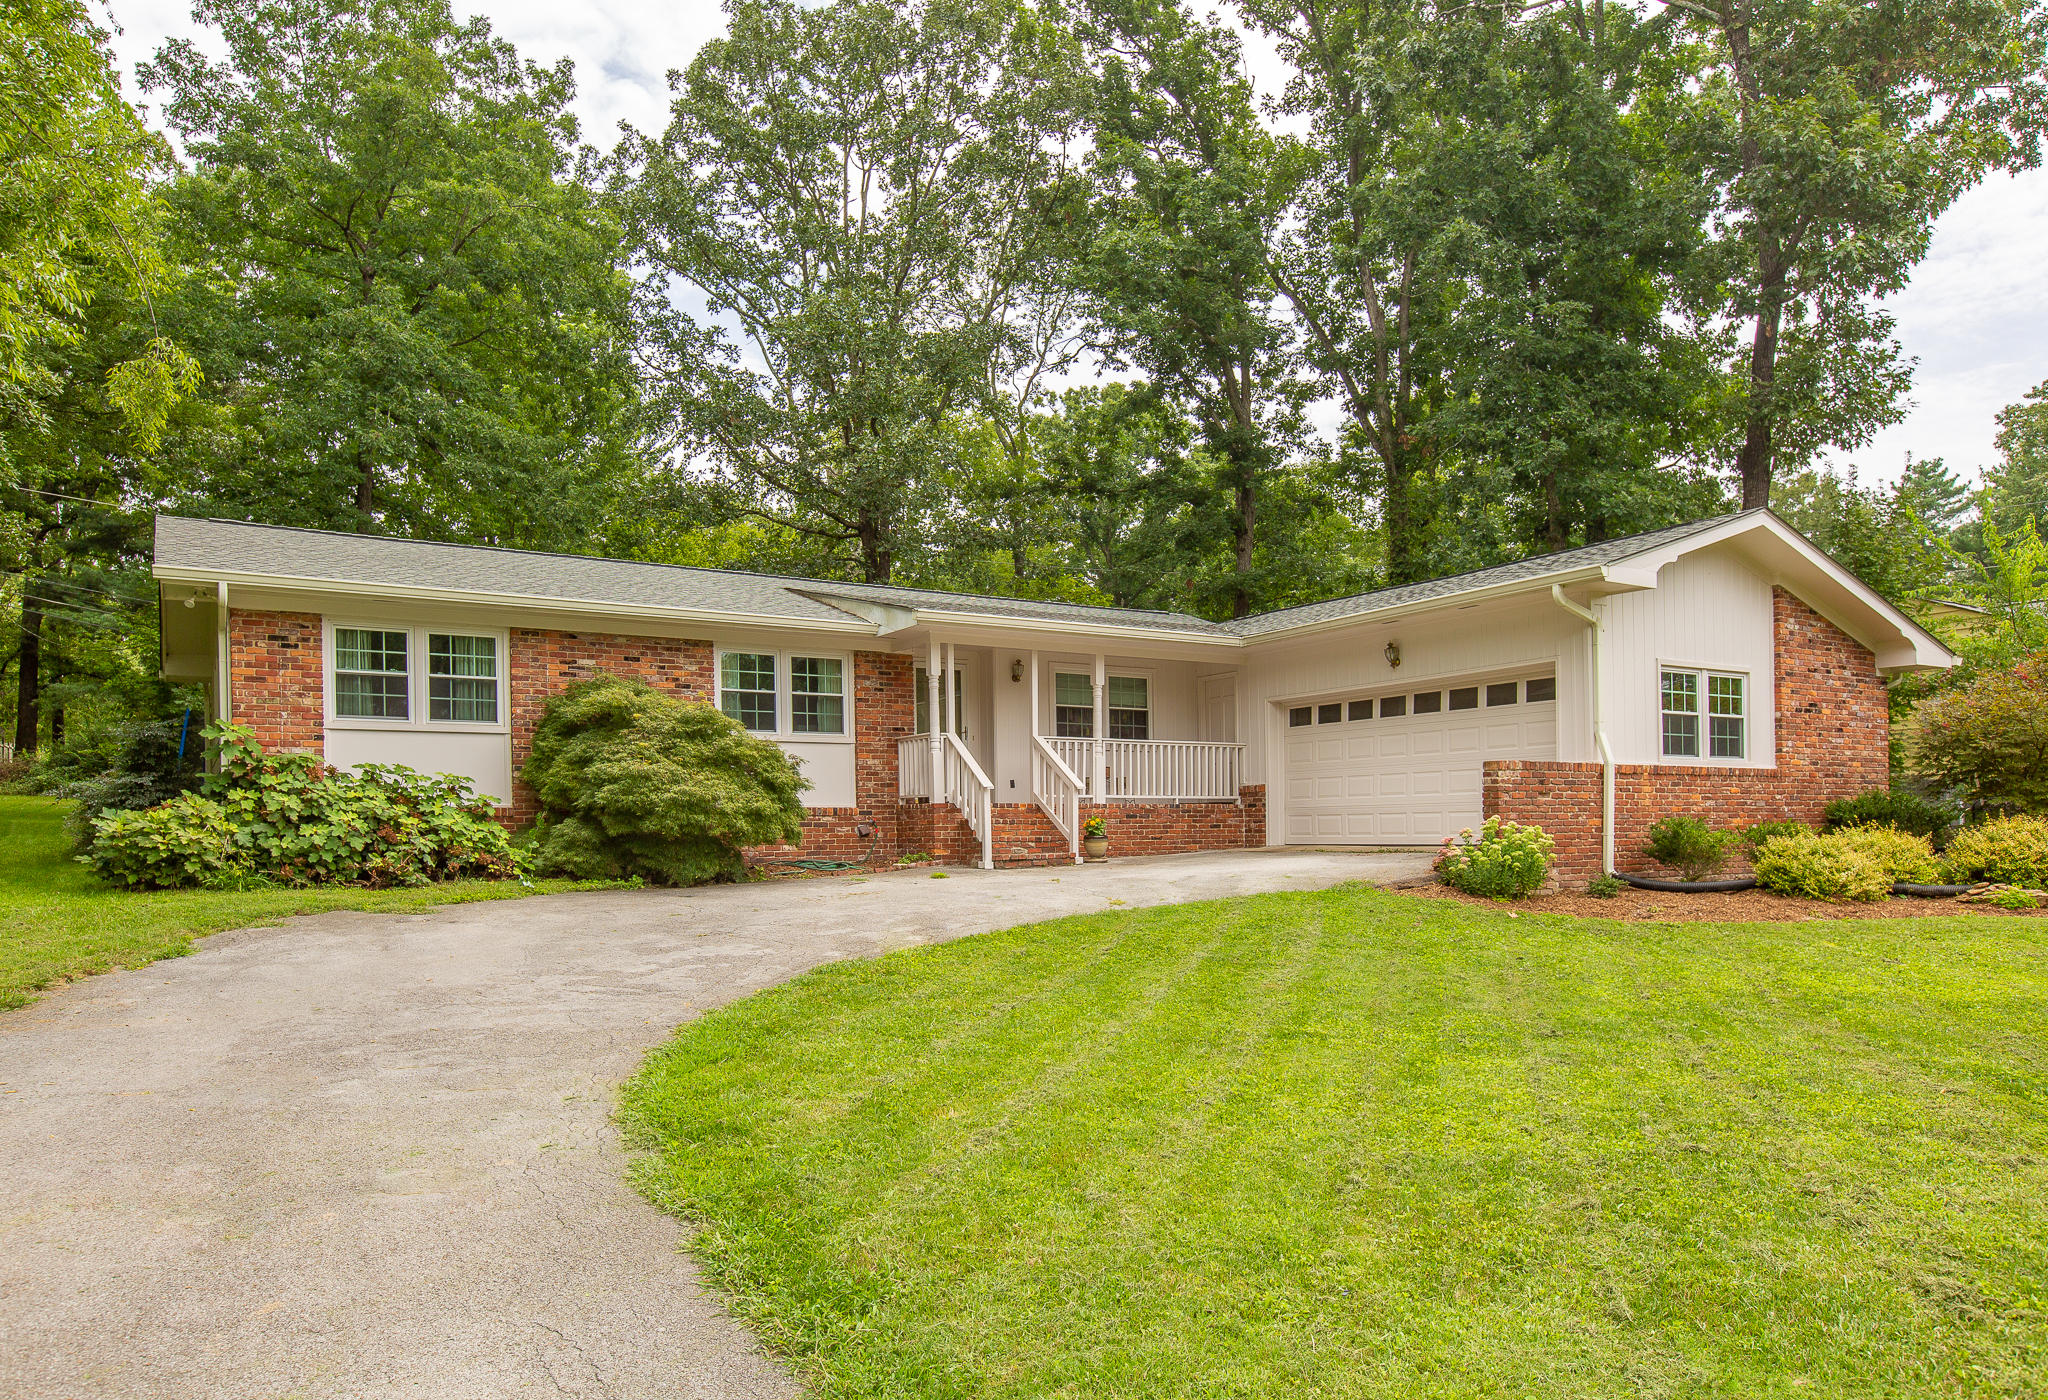 202 Pinehurst Ln, Signal Mountain, TN 37377